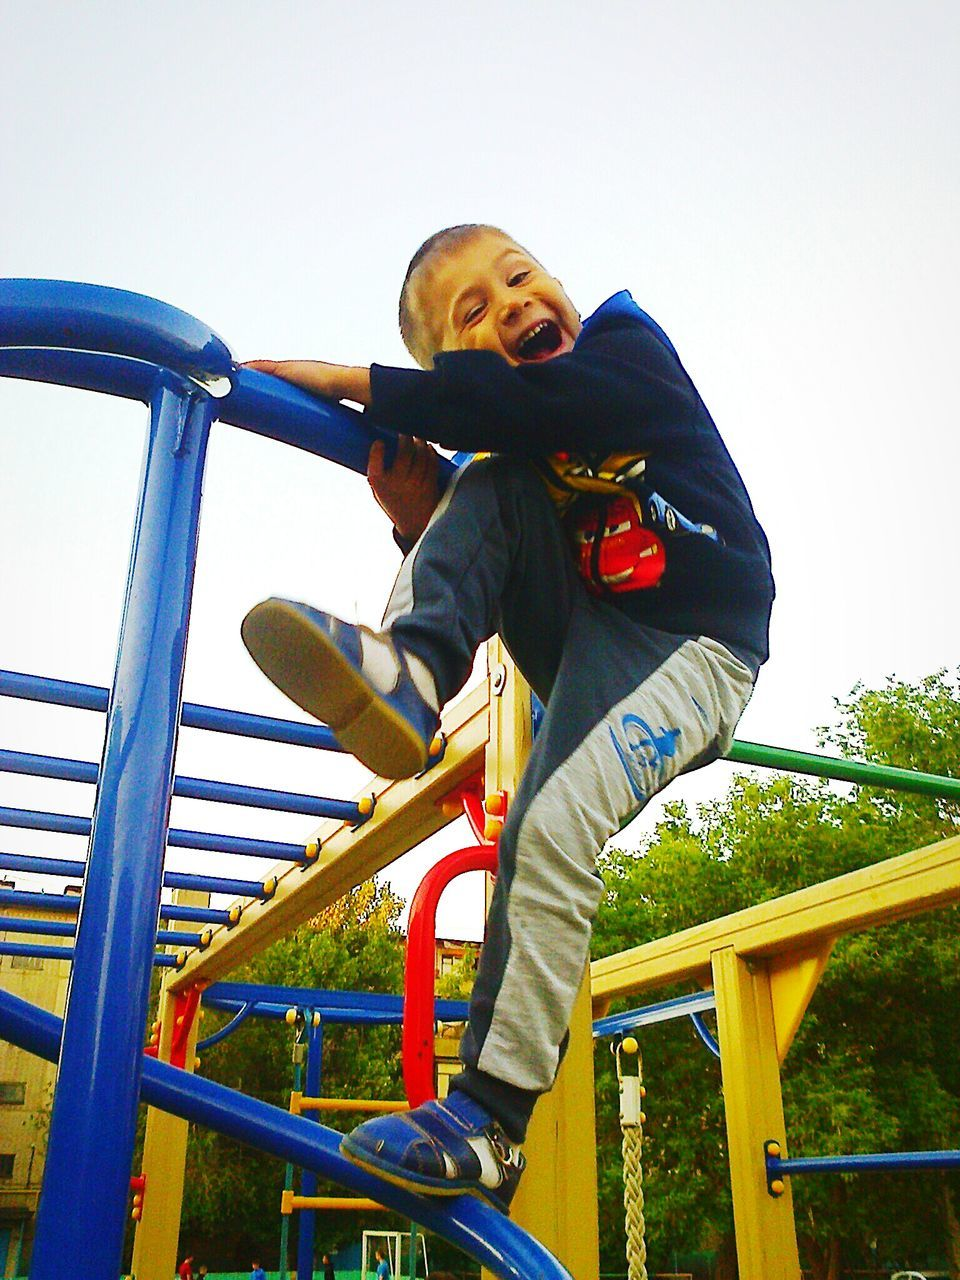 childhood, playground, elementary age, leisure activity, full length, playing, jungle gym, casual clothing, real people, slide, fun, boys, happiness, low angle view, outdoor play equipment, one person, smiling, lifestyles, park - man made space, enjoyment, front view, day, clear sky, outdoors, girls, portrait, sky, people